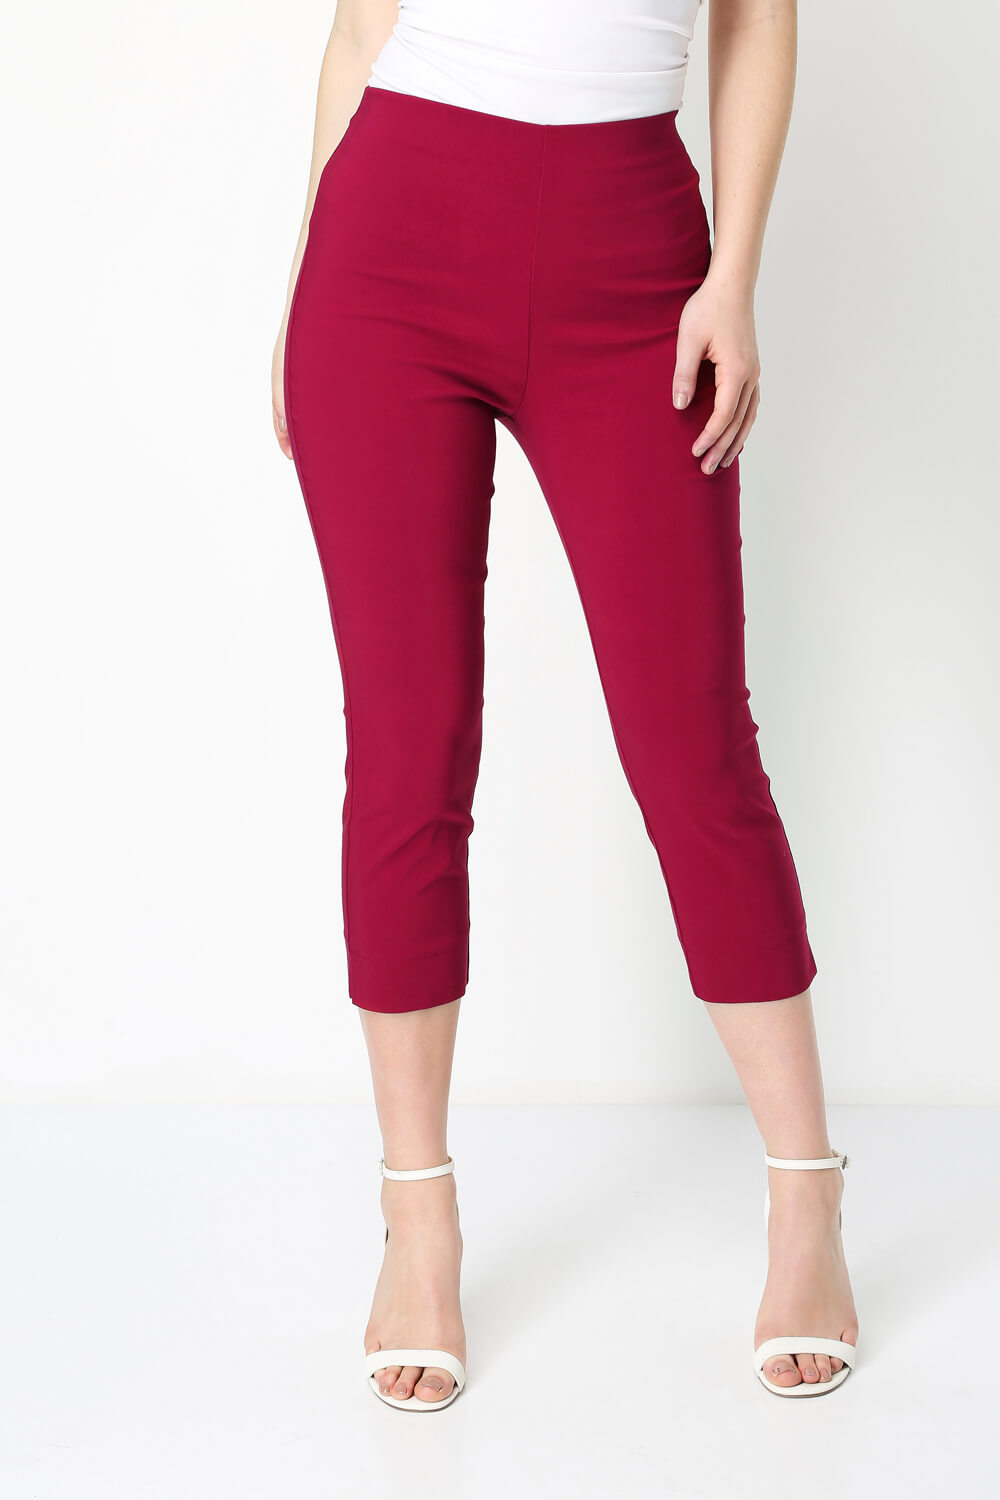 Roman-Originals-Women-Cropped-Stretch-Bengaline-Capri-Trousers-3-4-Thick-Legging 縮圖 281